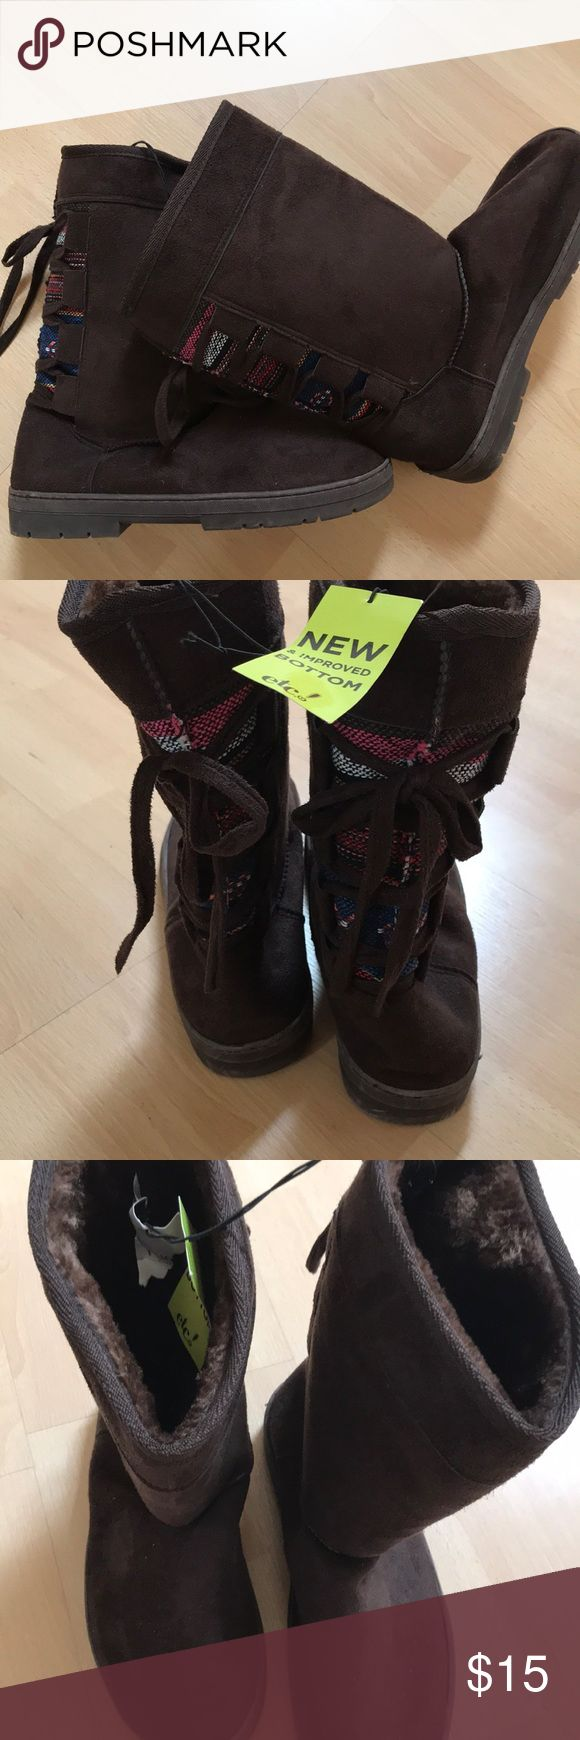 Warm boots New and super cozy. Size Large (like an 8) Rue 21 Shoes Winter & Rain Boots